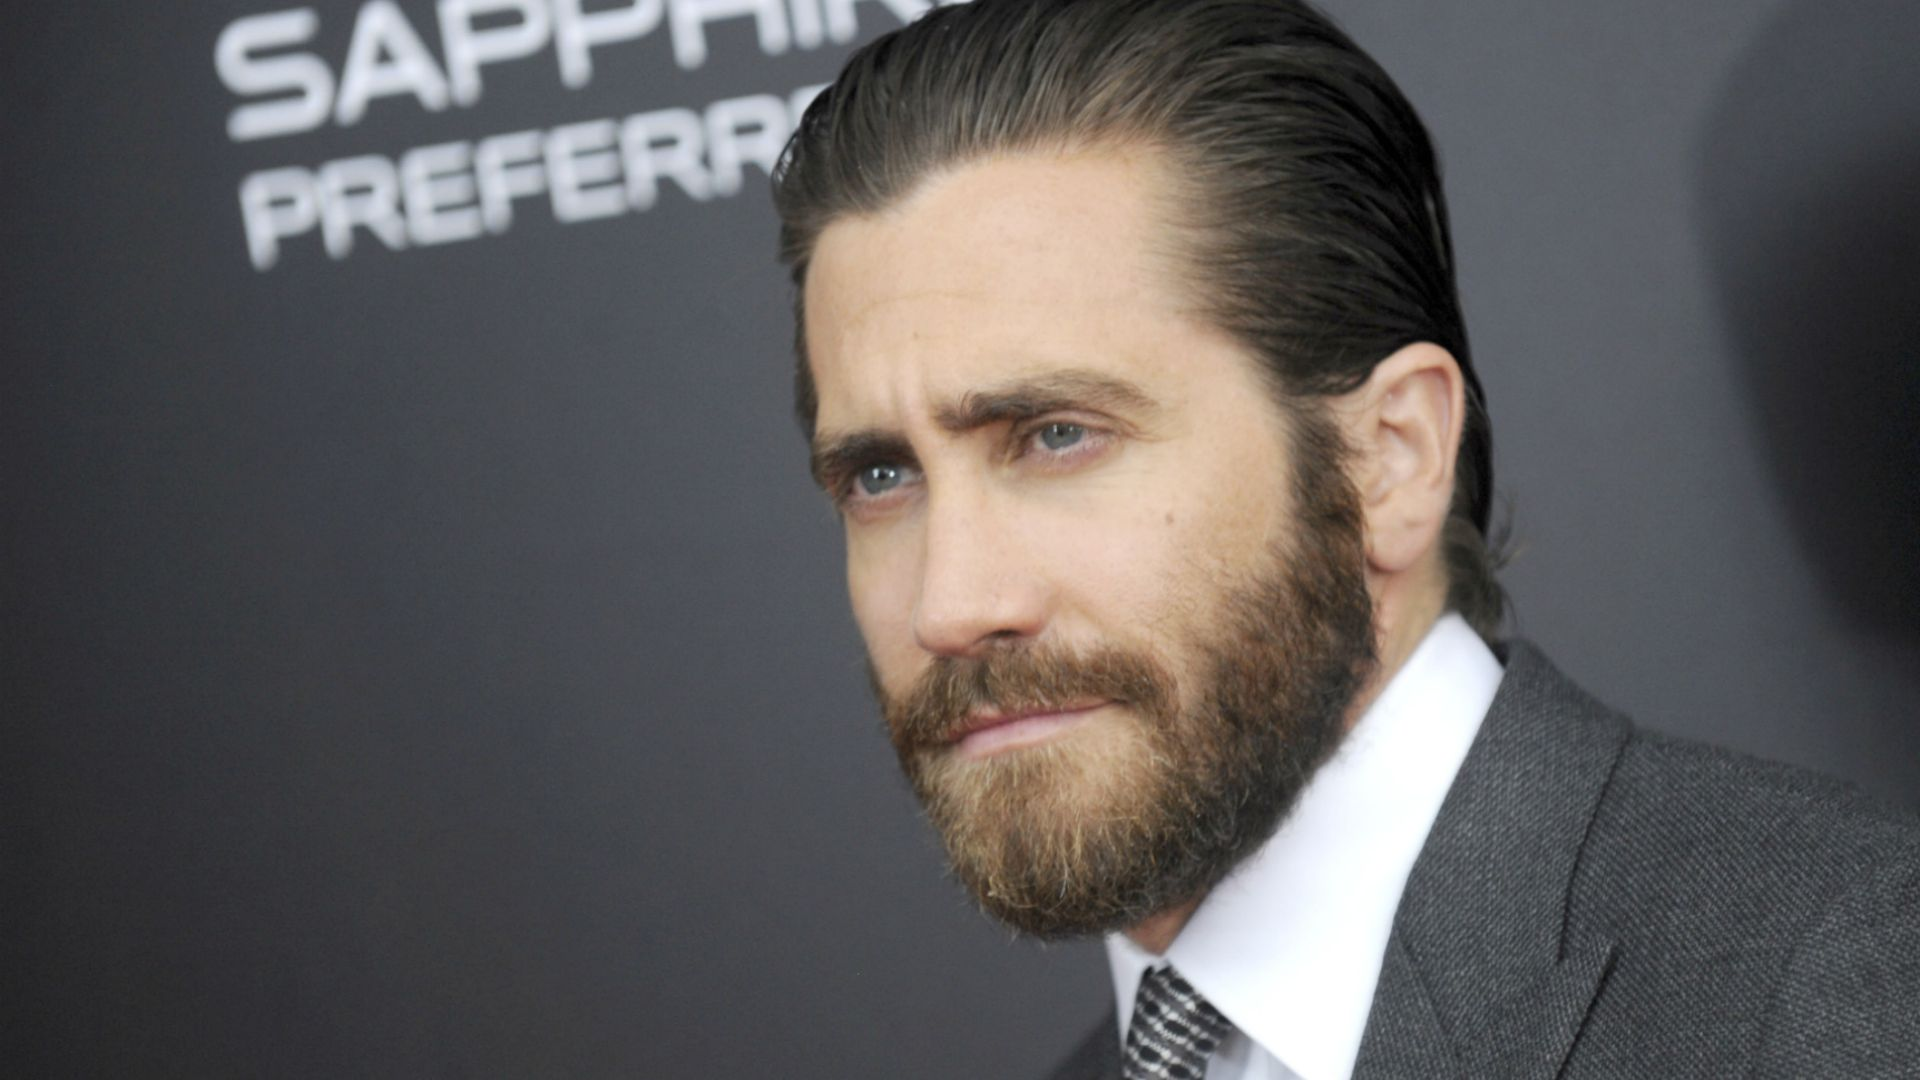 Jake Gyllenhaal stars as lead actor in Demolition